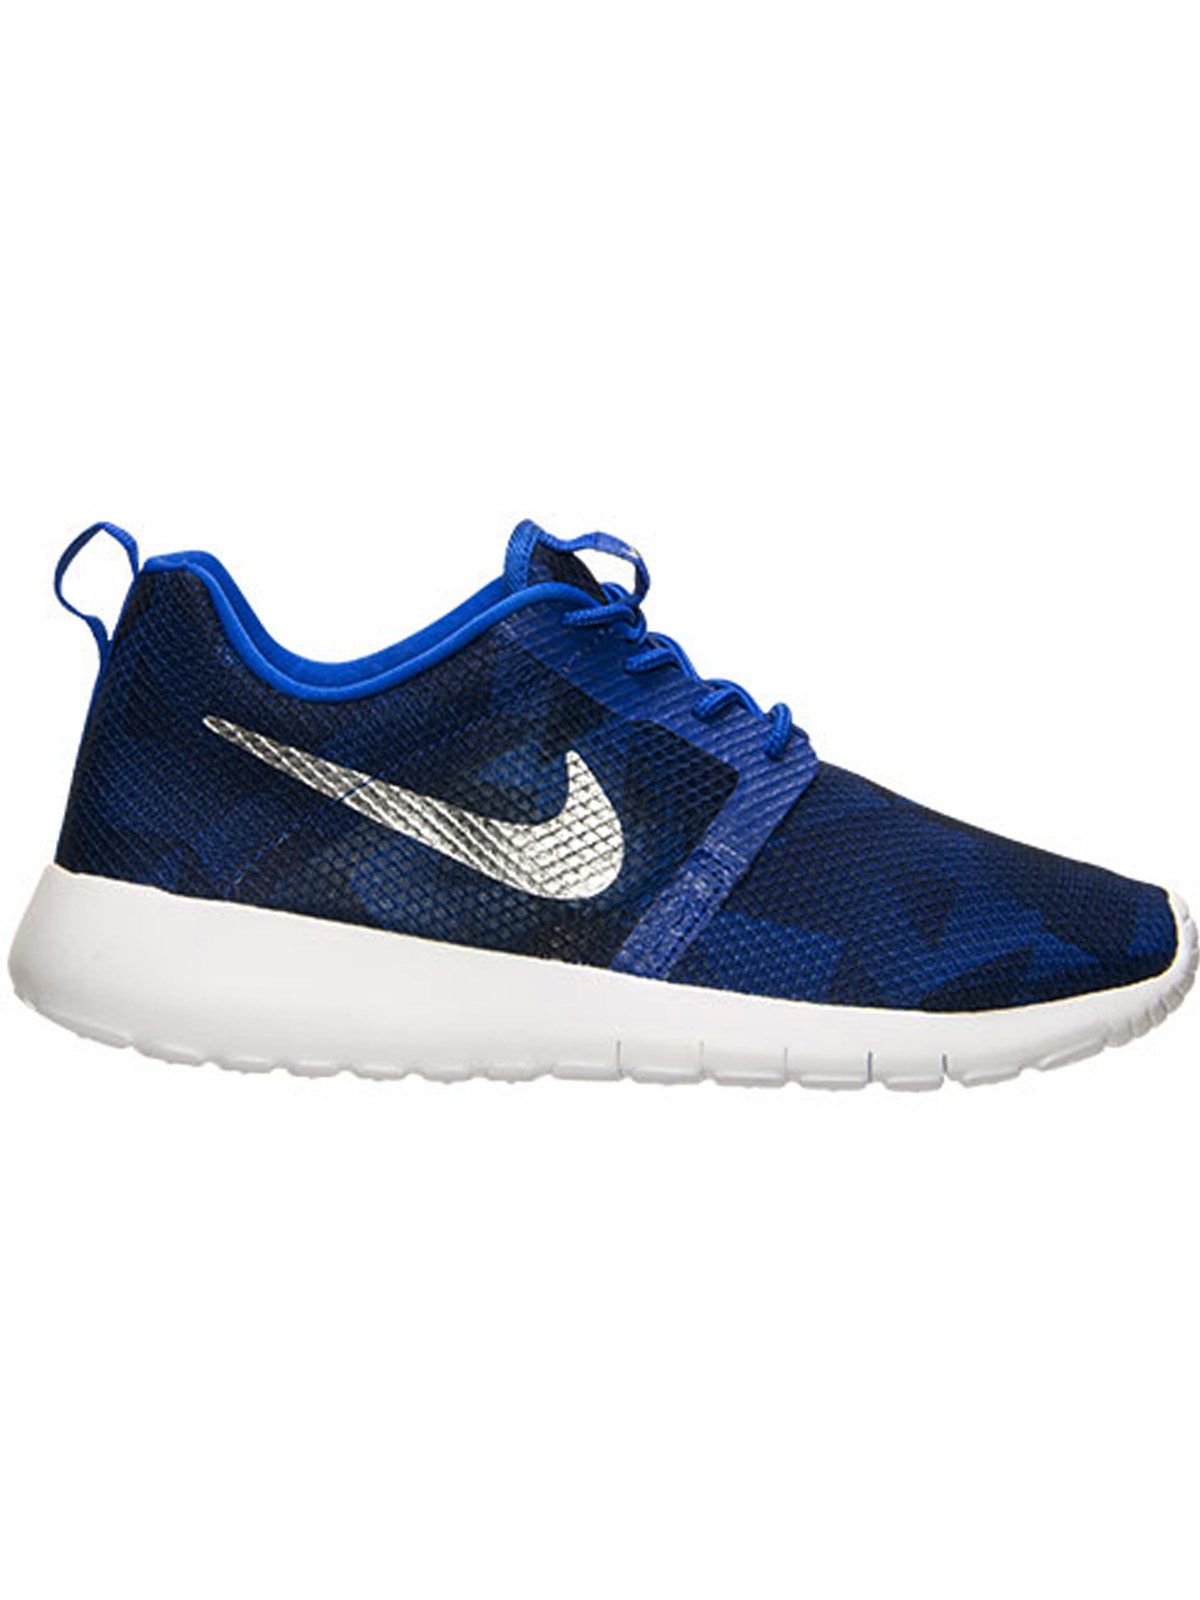 Nike Roshe One Flight Weight GS 705485403